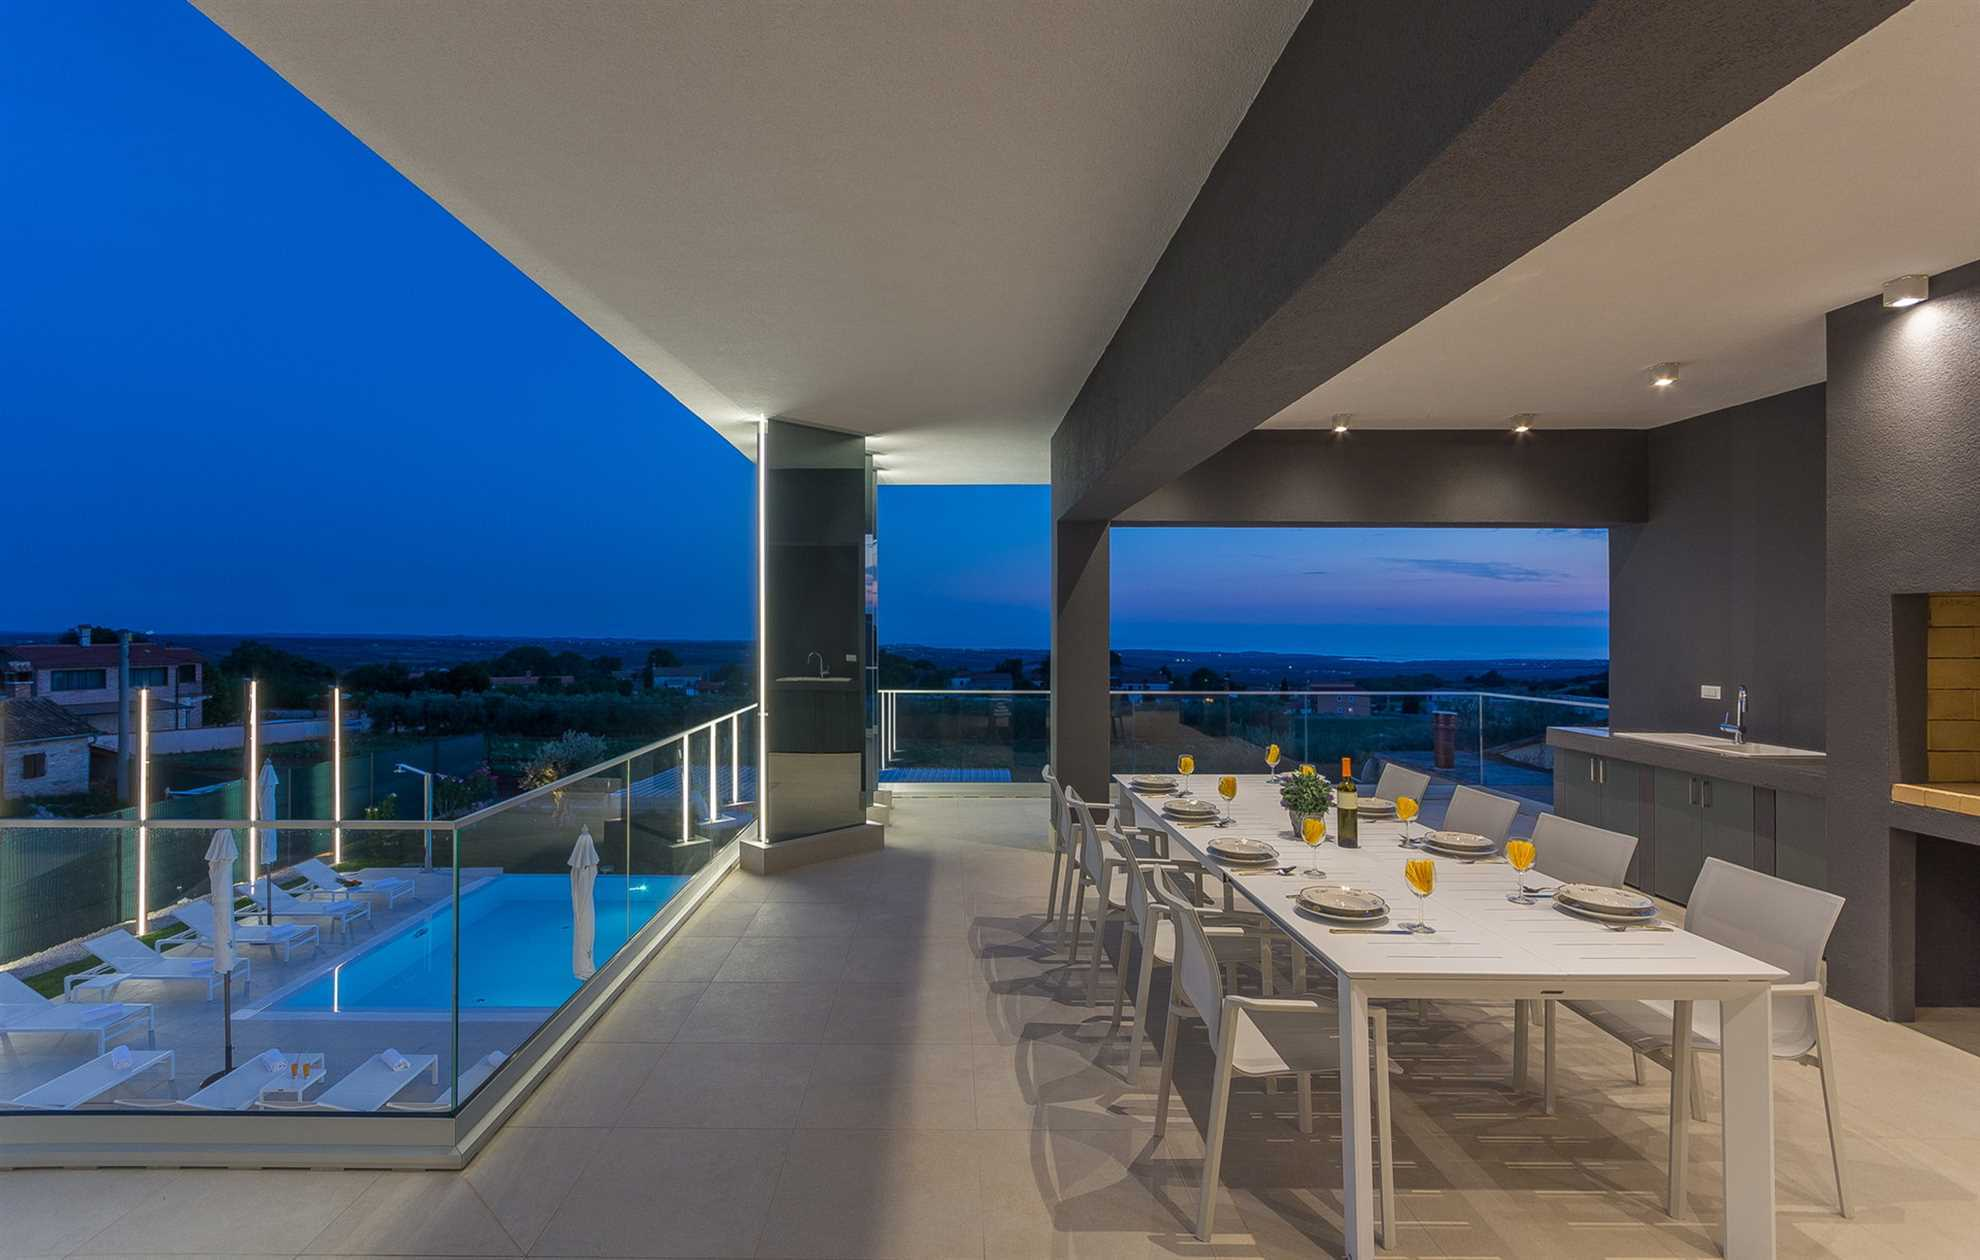 Terrace with outdoor dining